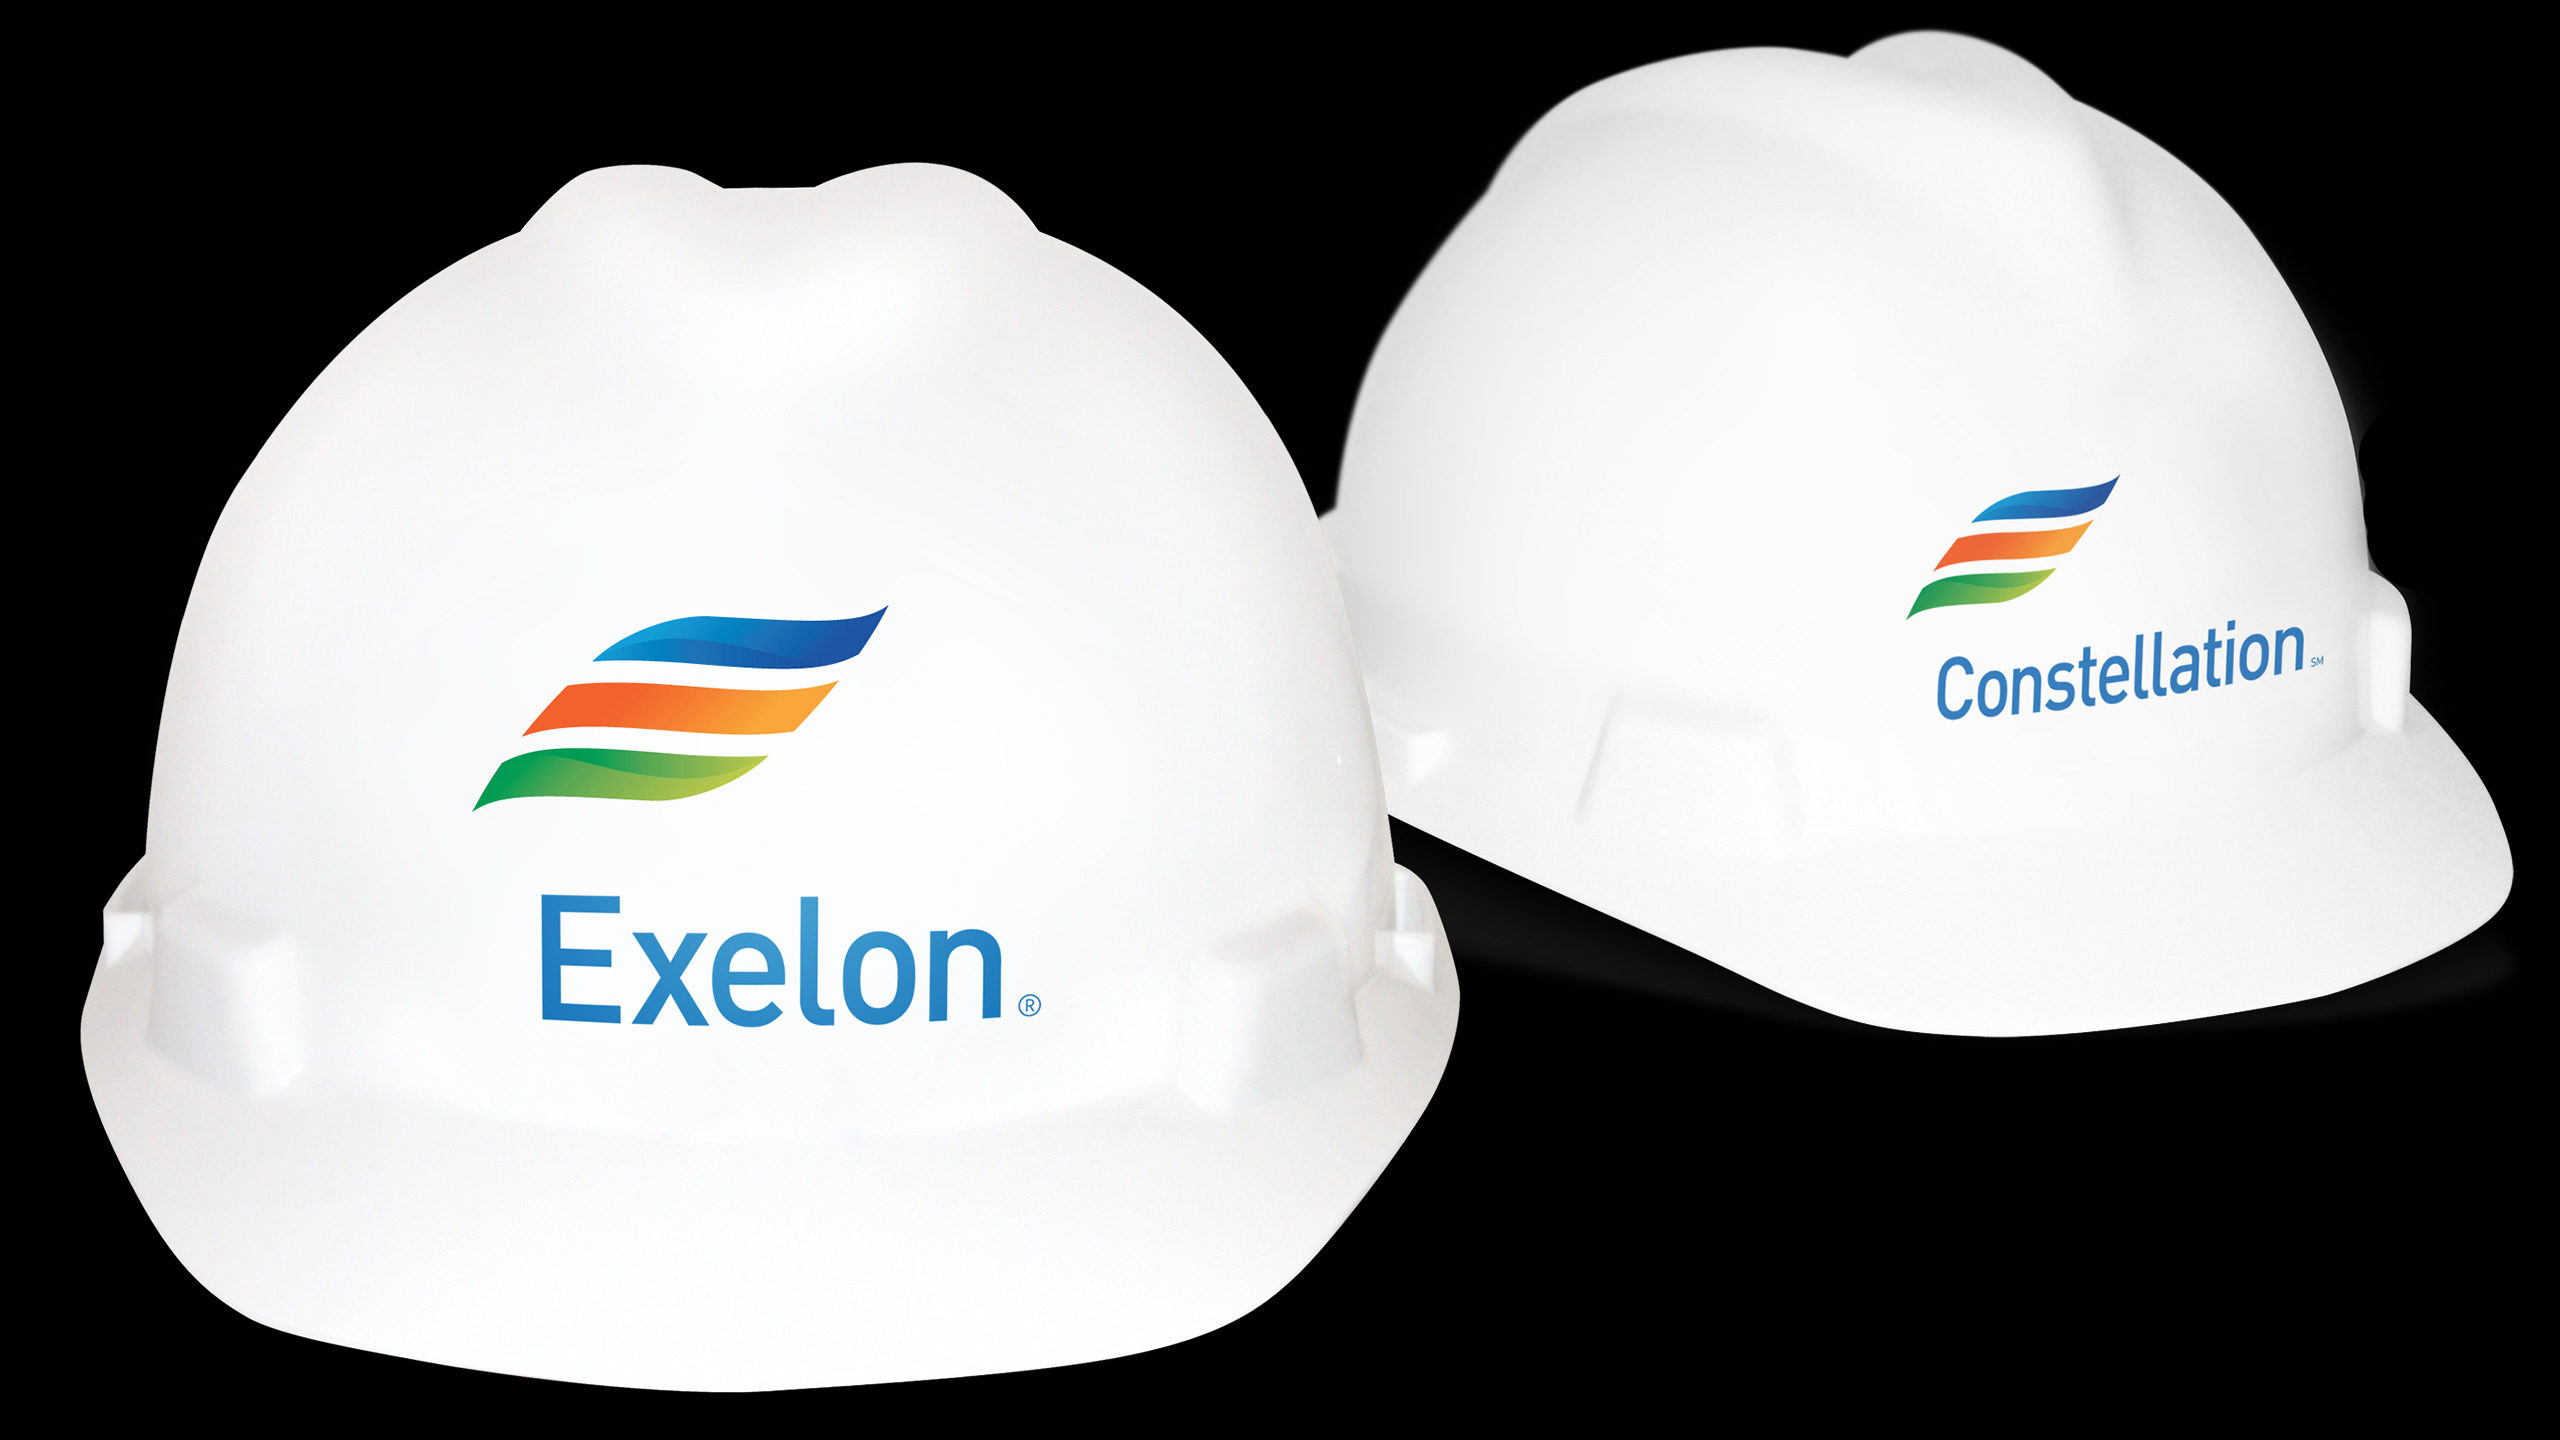 How does exelon work